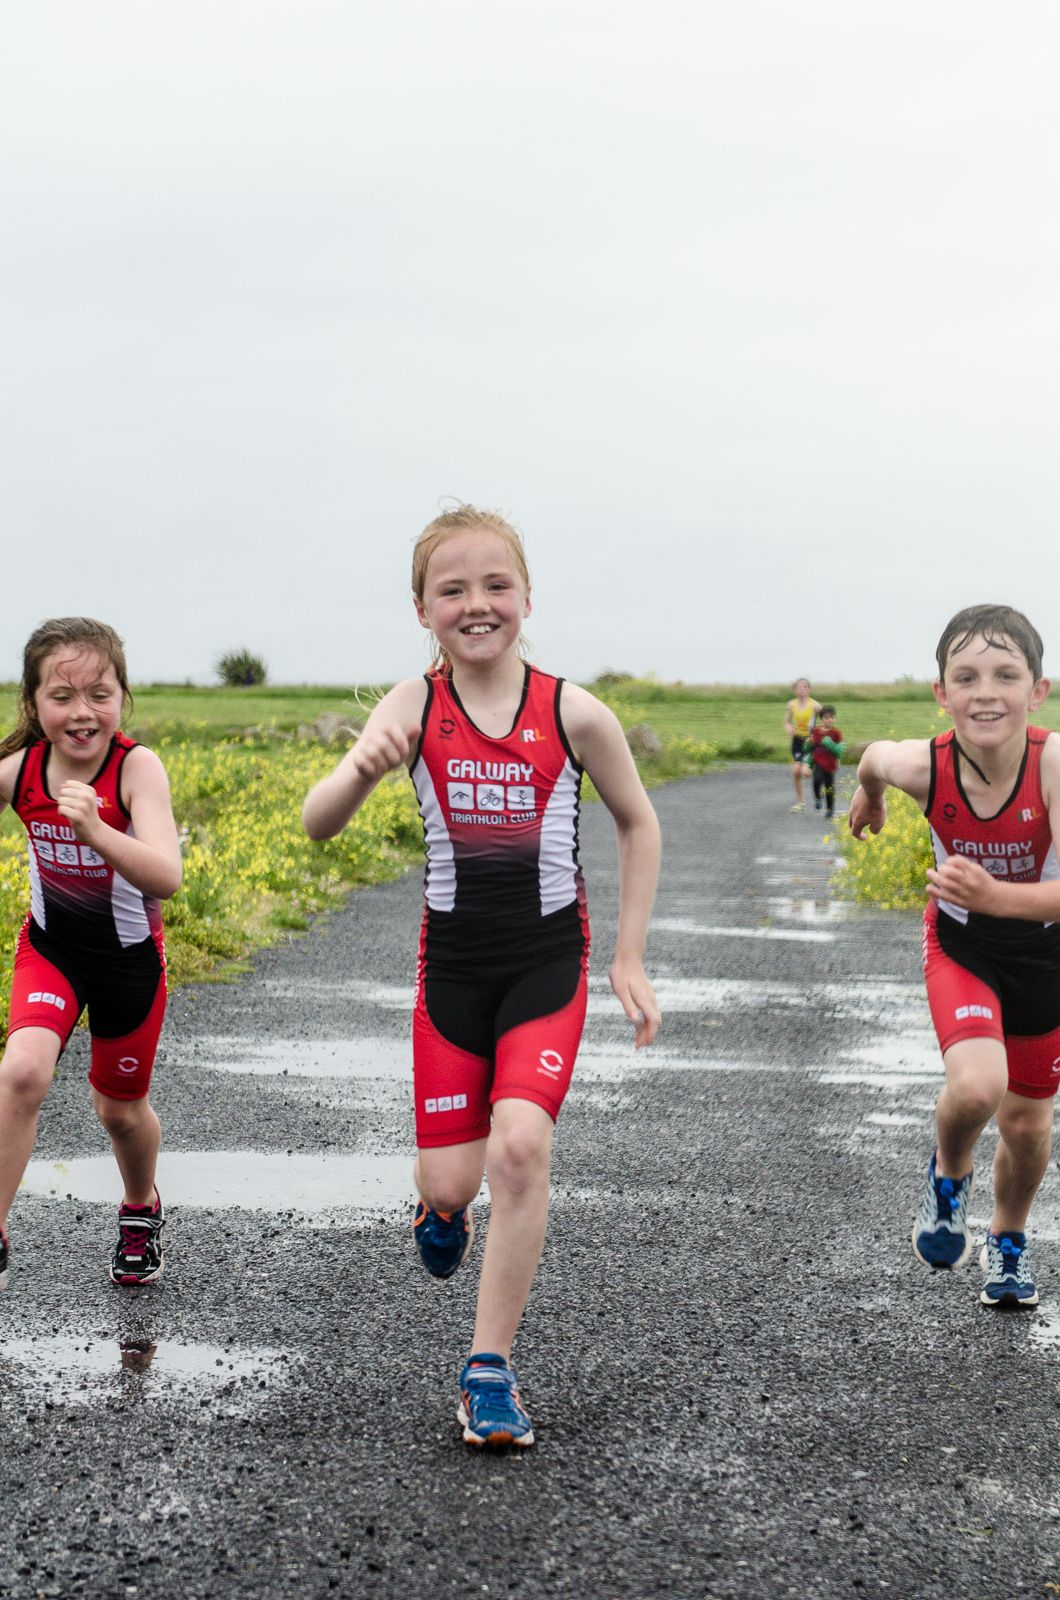 Heather Loomes, Caoimhe Loomes and Dylan Cassidy testing their new triathlon gea